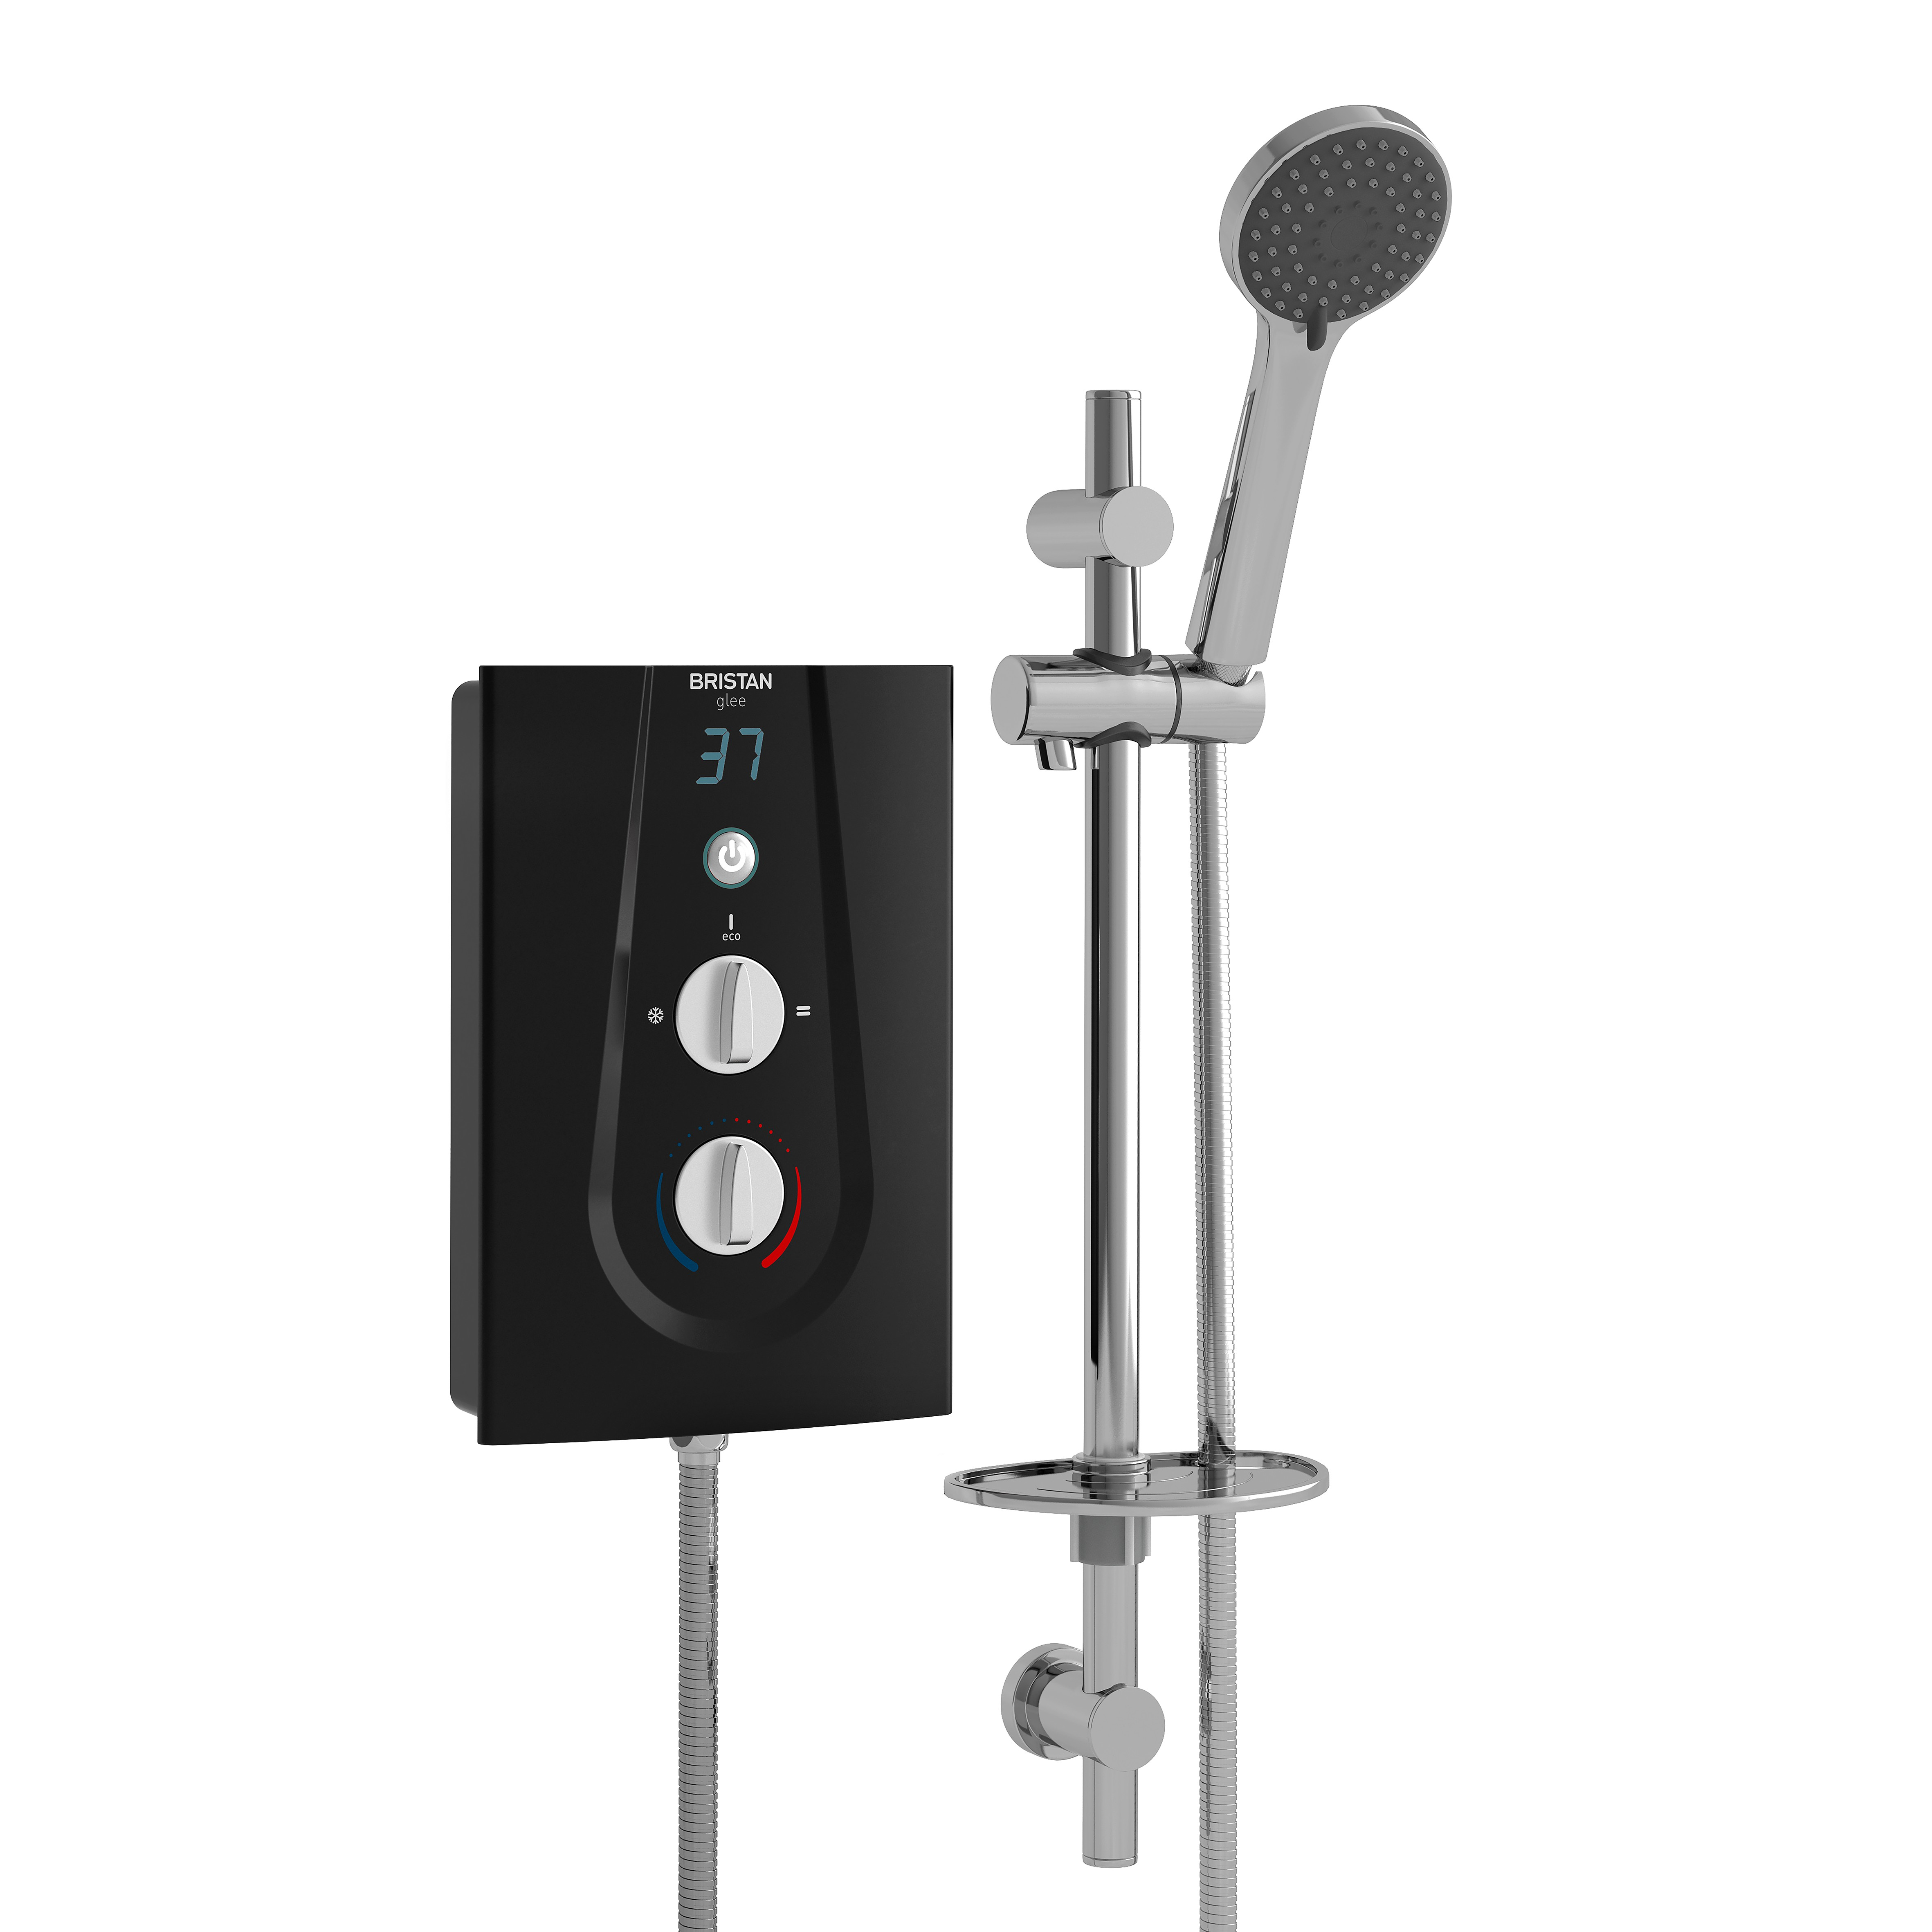 BRISTAN GLEE 9.5KW ELECTRIC SHOWER BLACK - GLE395 B